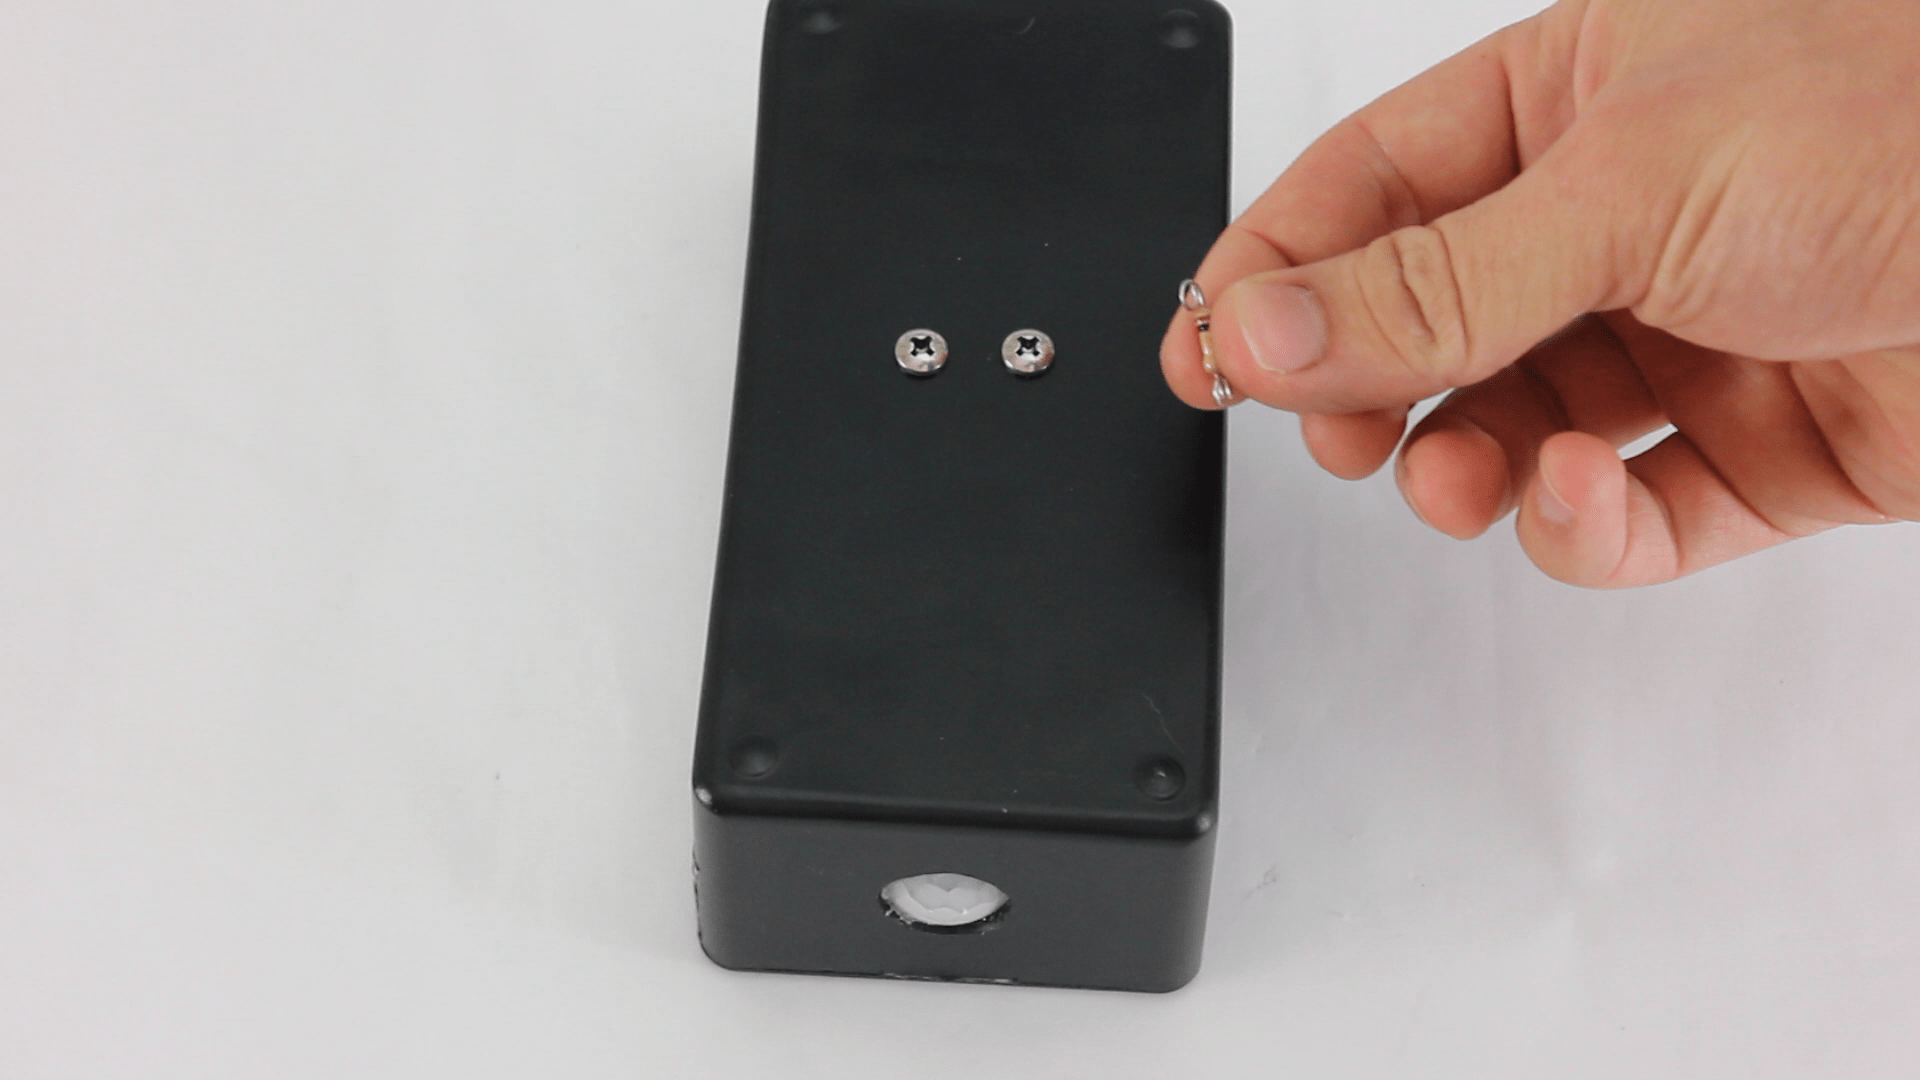 Disable a Motion Sensing Alarm with a Resistor | Make: